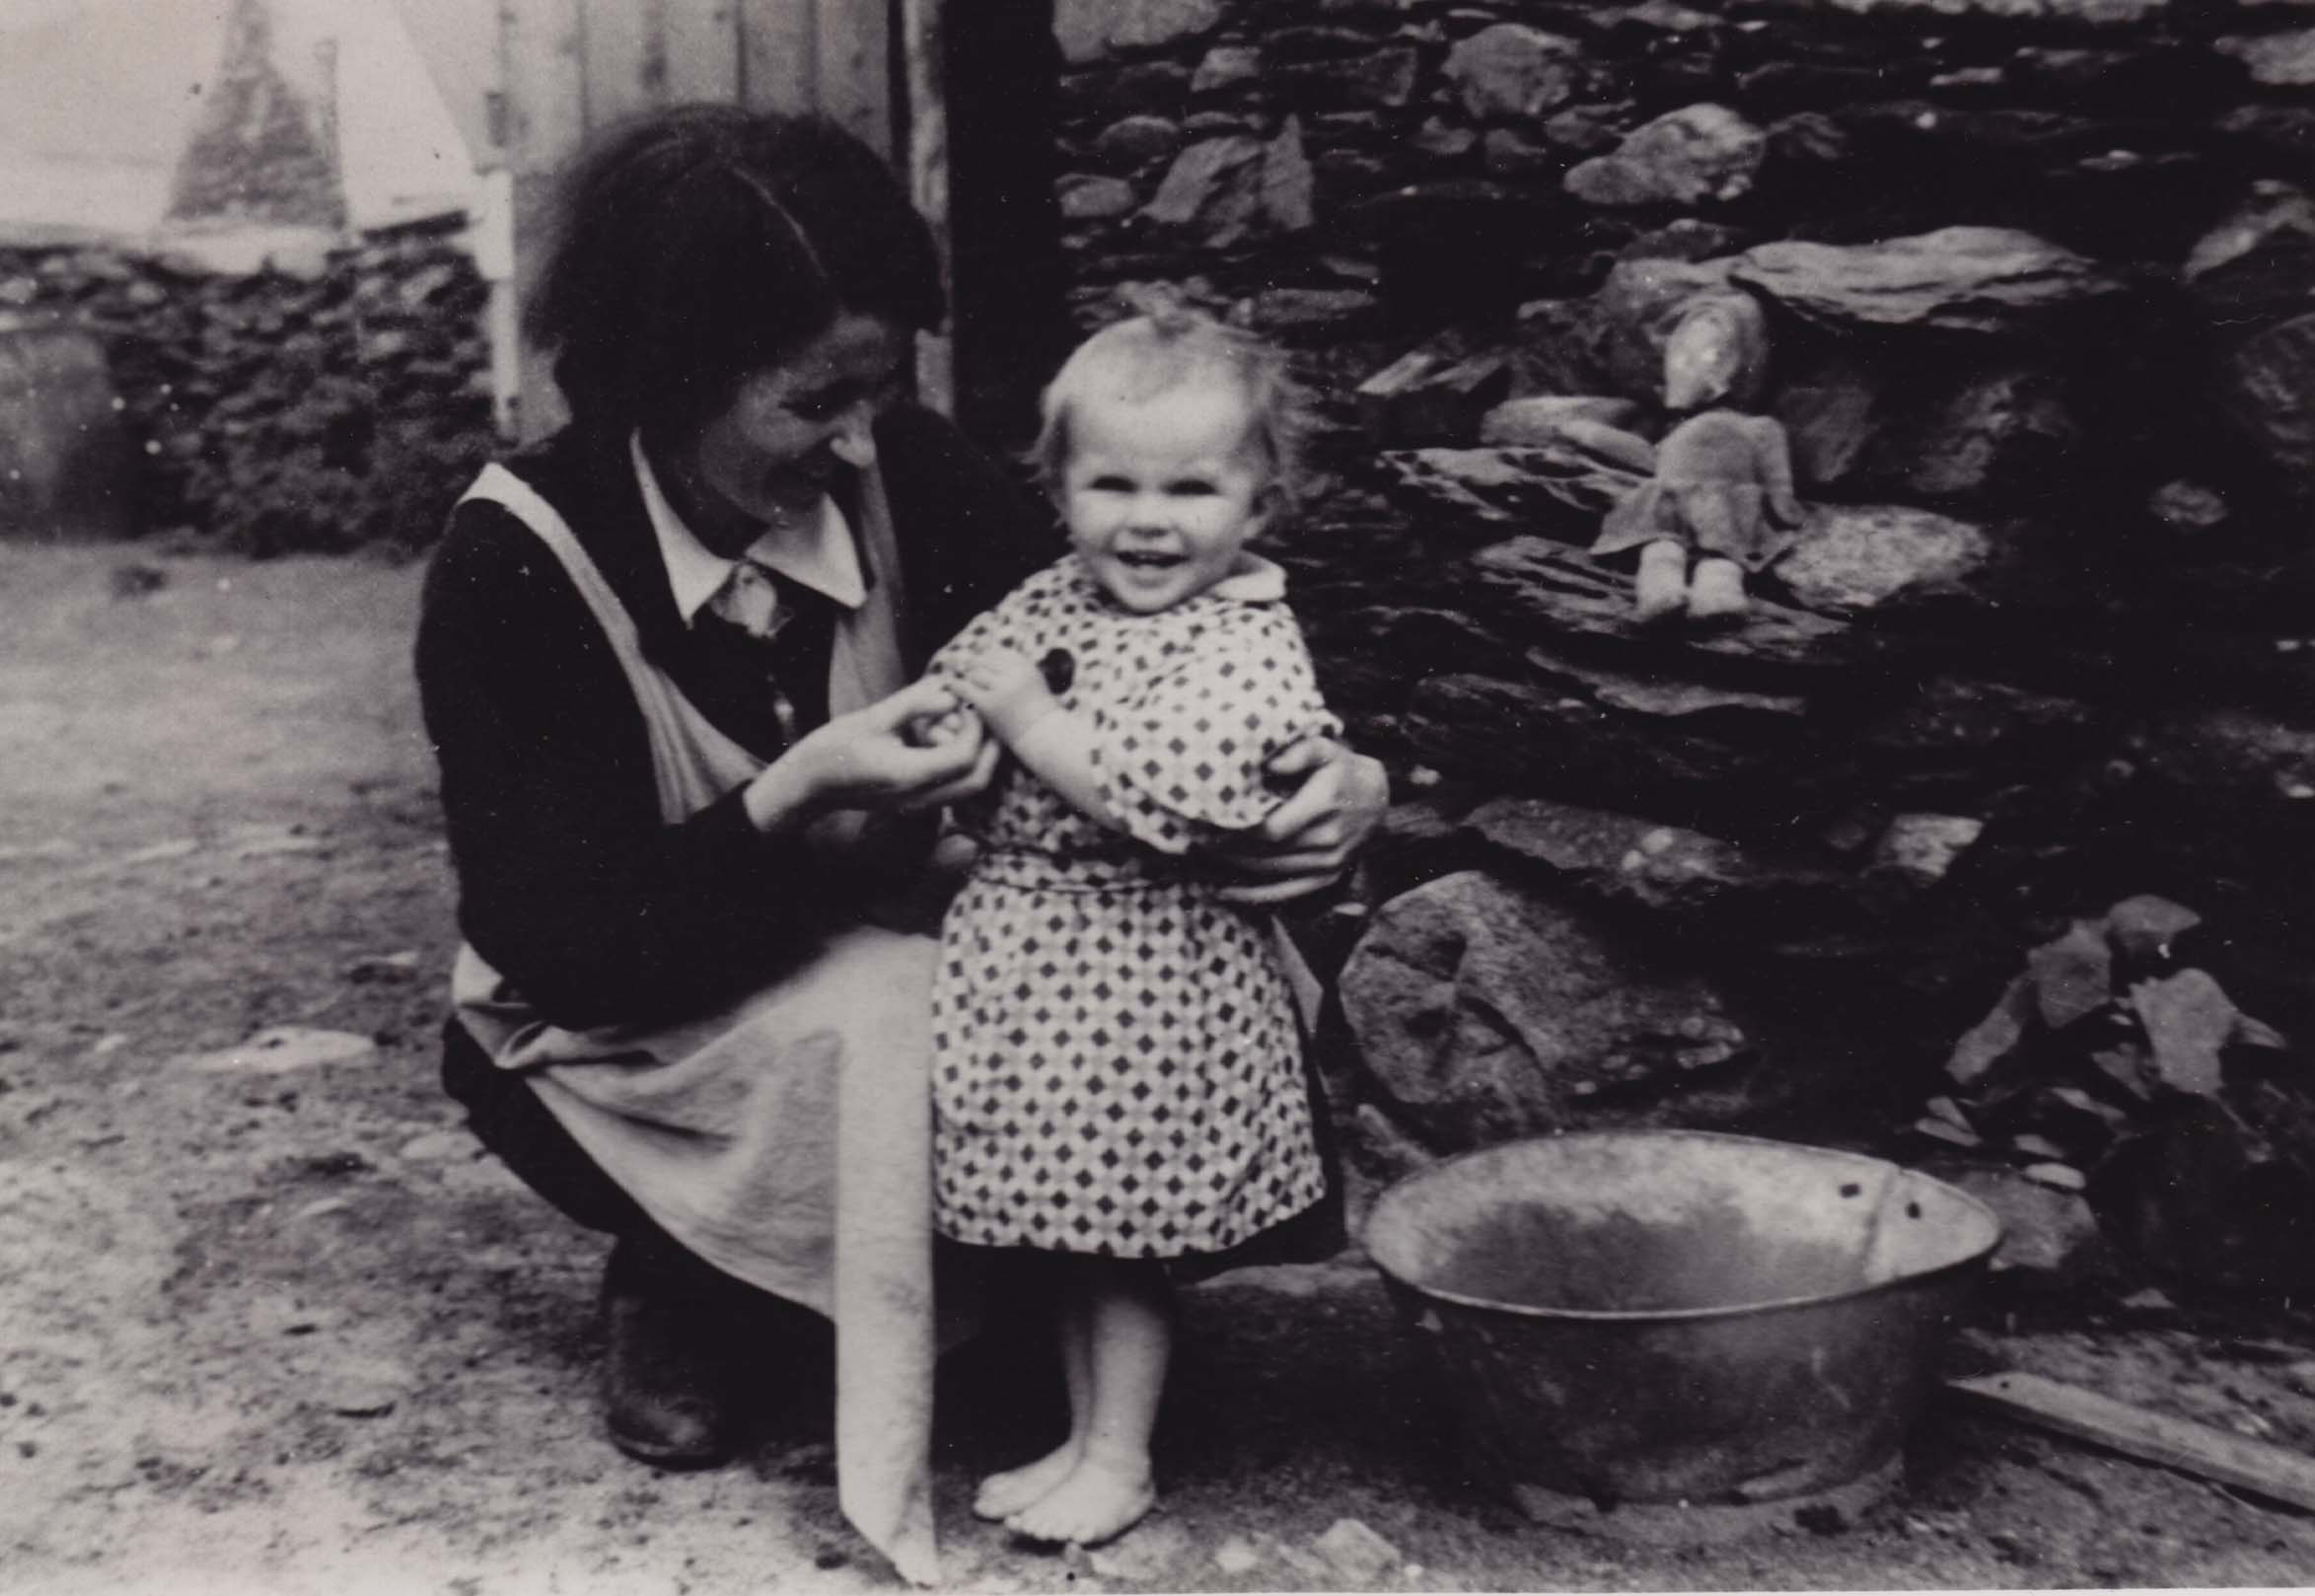 Eibhlis (Ni Shuilleabhain) Ui Chriomhthain with her daughter Niamh, late 1930s. Taken by George Chambers. Courtesy National Folklore Collection, UCD.